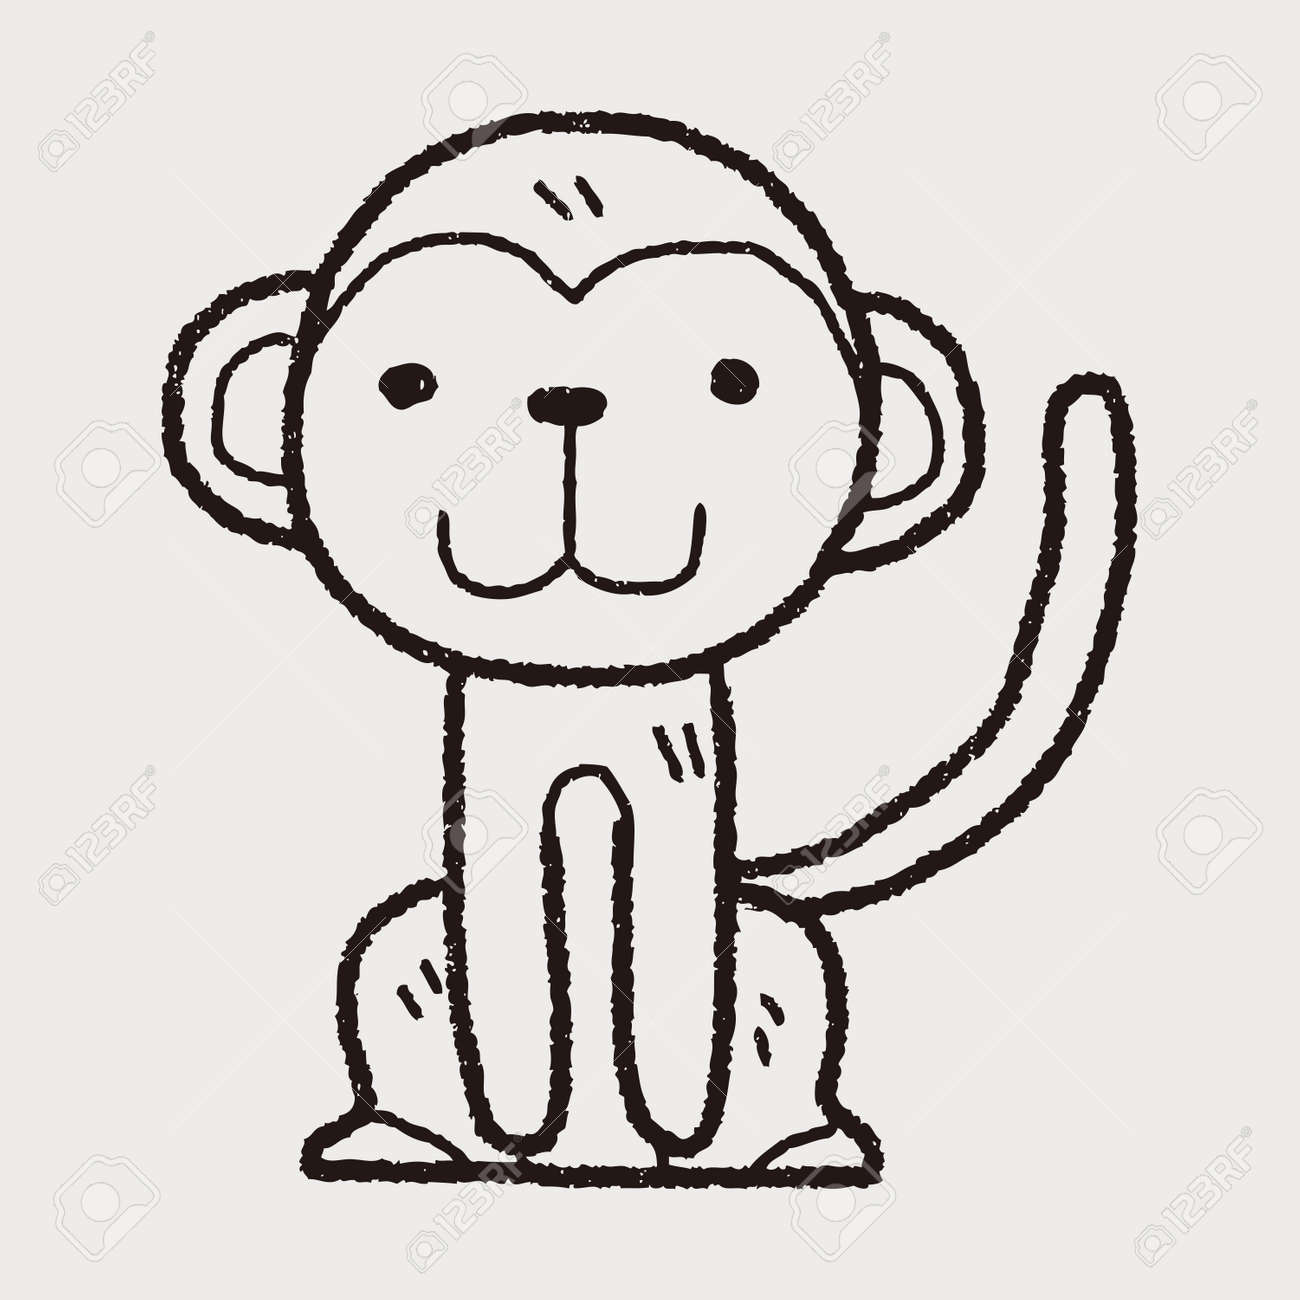 monkey doodle royalty free cliparts vectors and stock